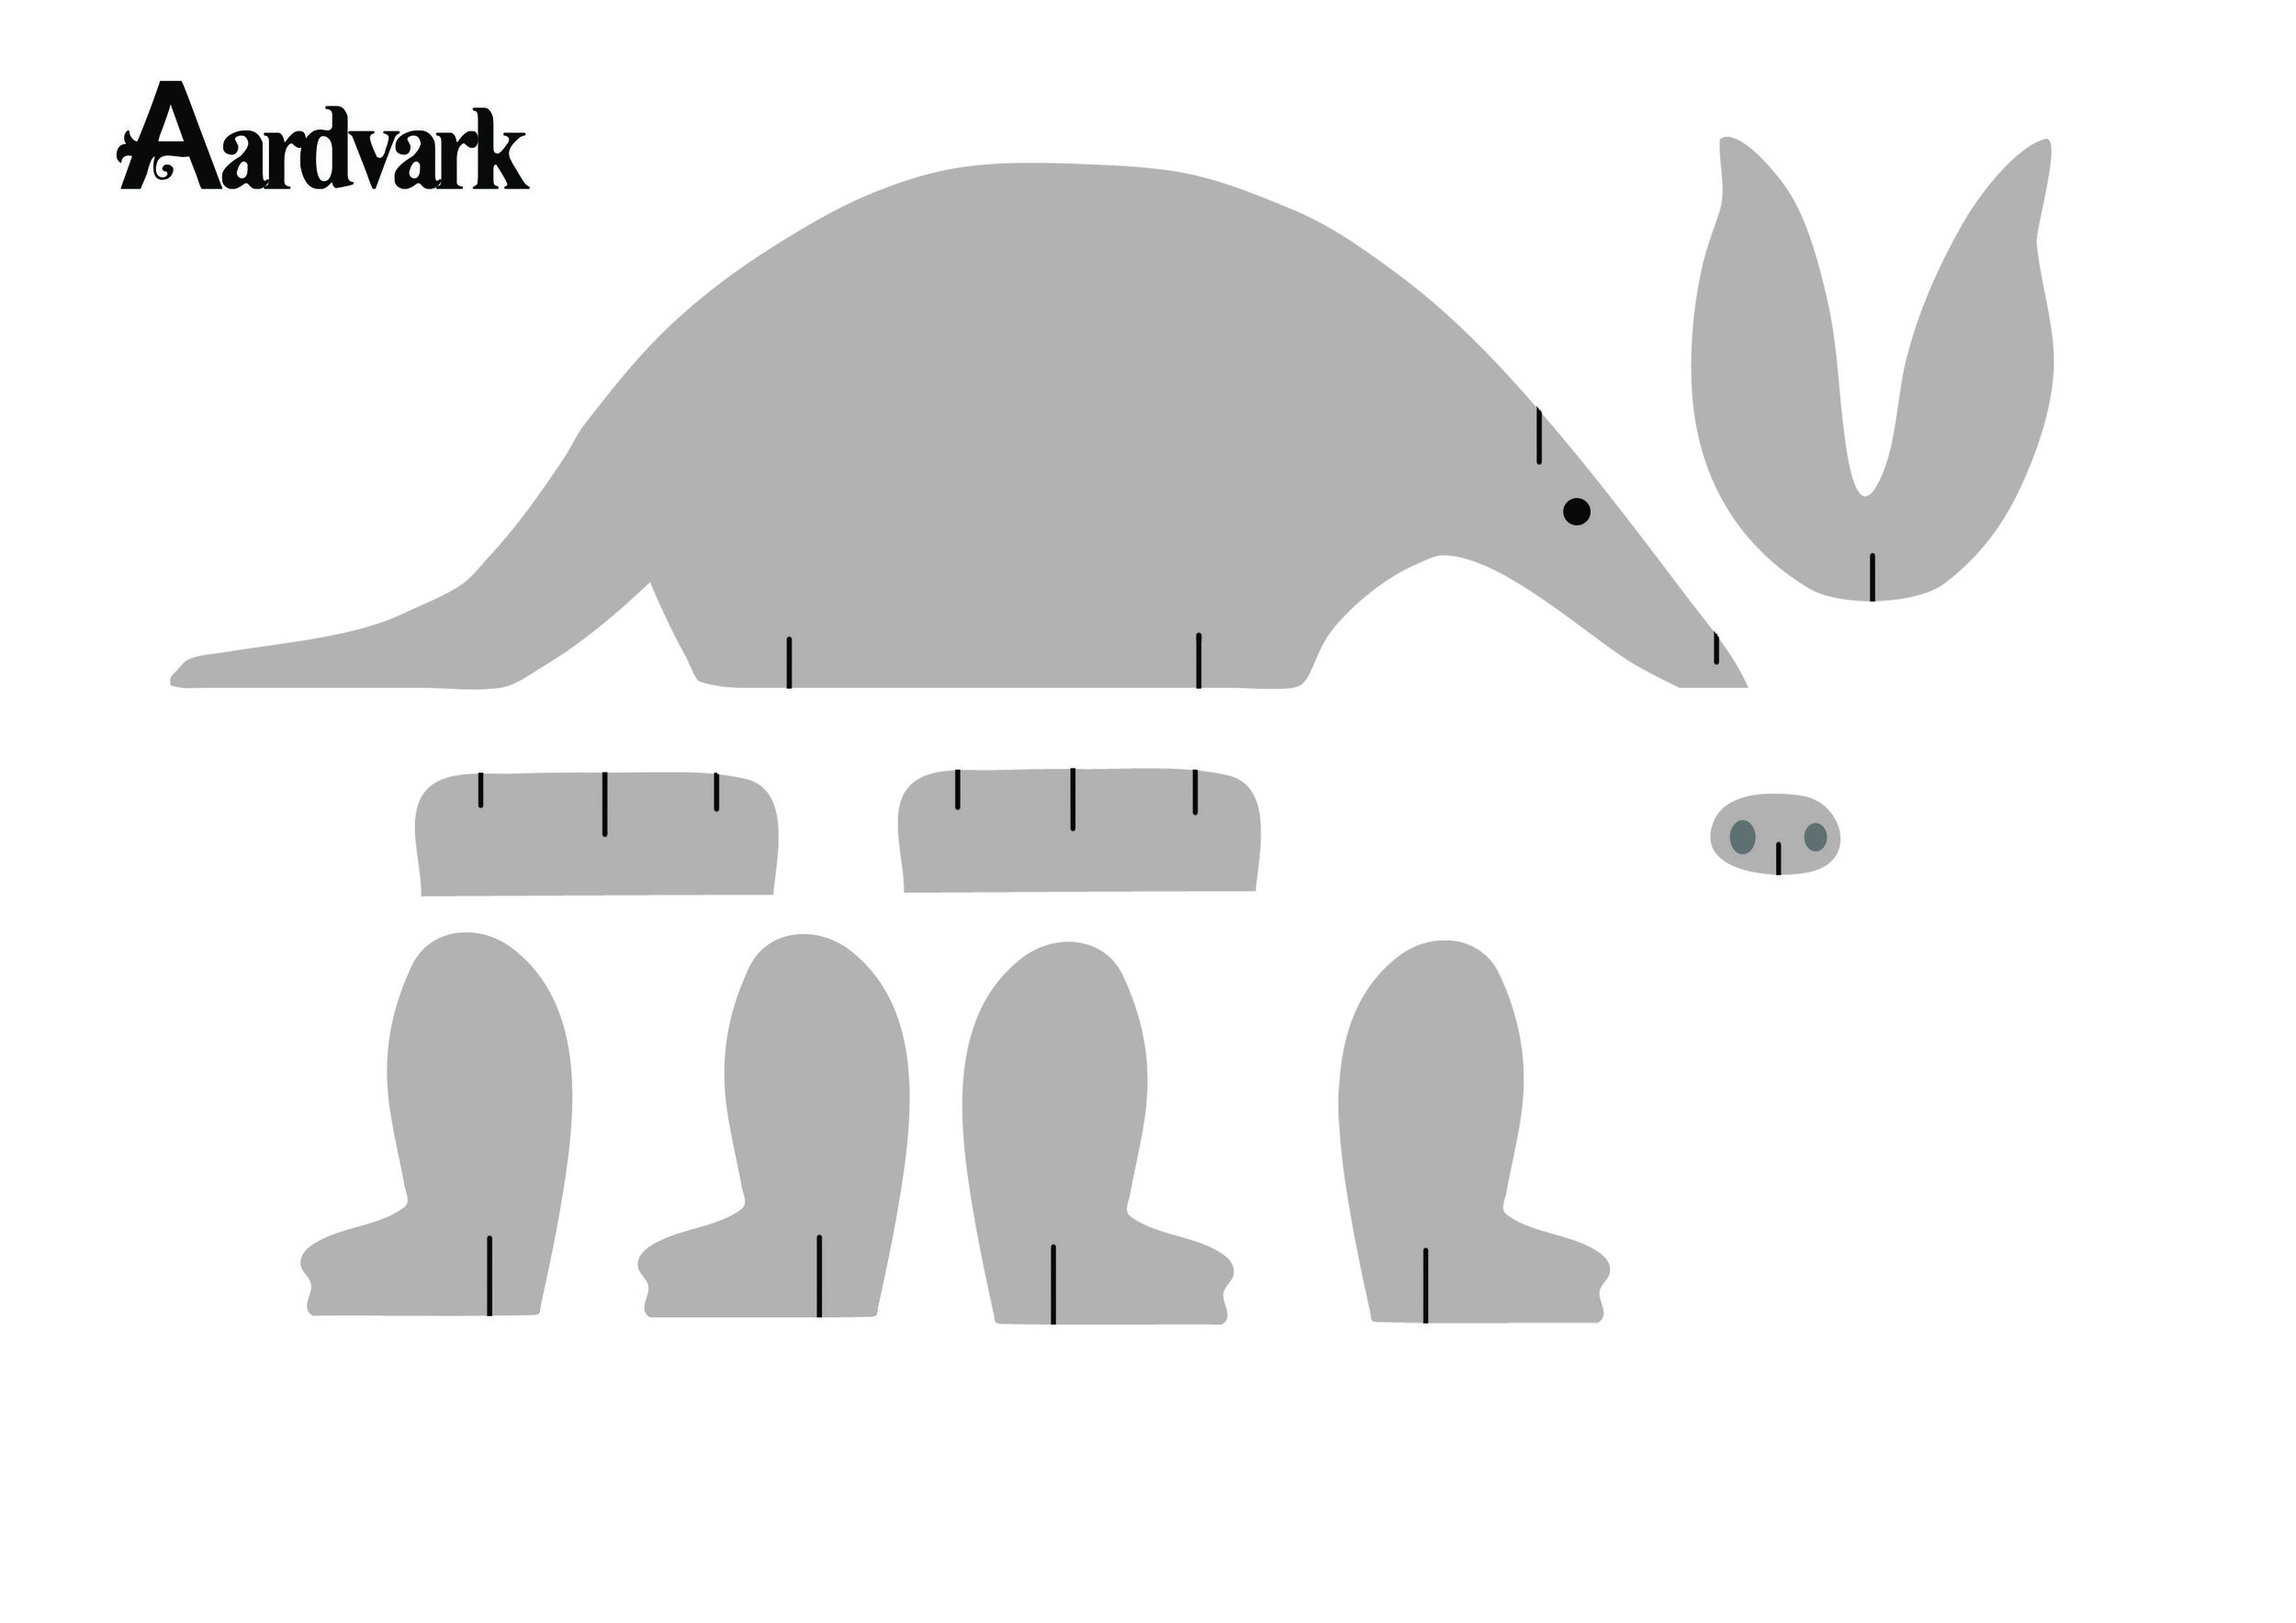 aardvark cutout model.JPG